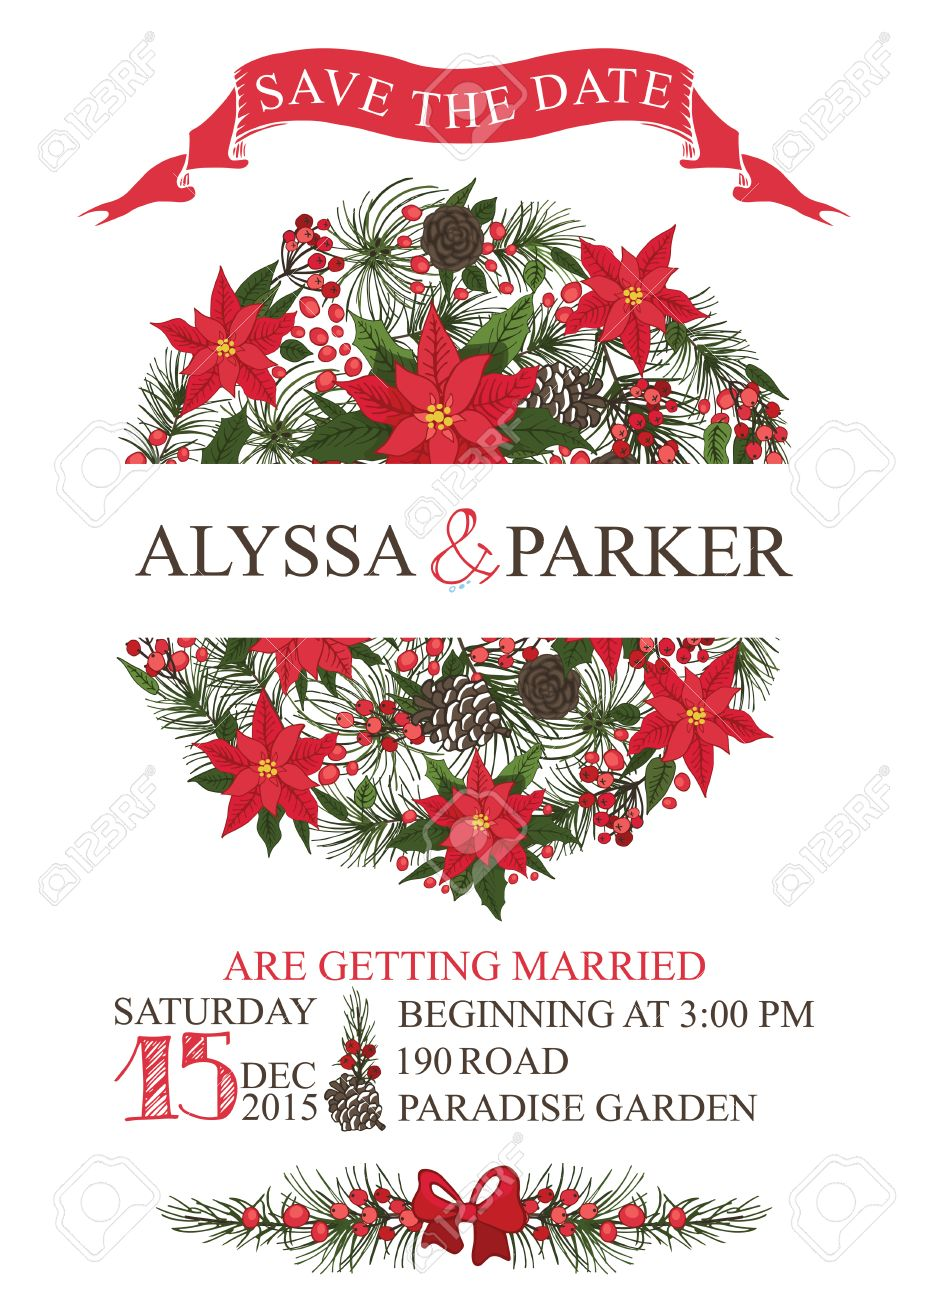 Christmas Save The Date Clipart.Winter Wedding Save The Date Card With Christmas Circle Composition Text Numbers Ribbon